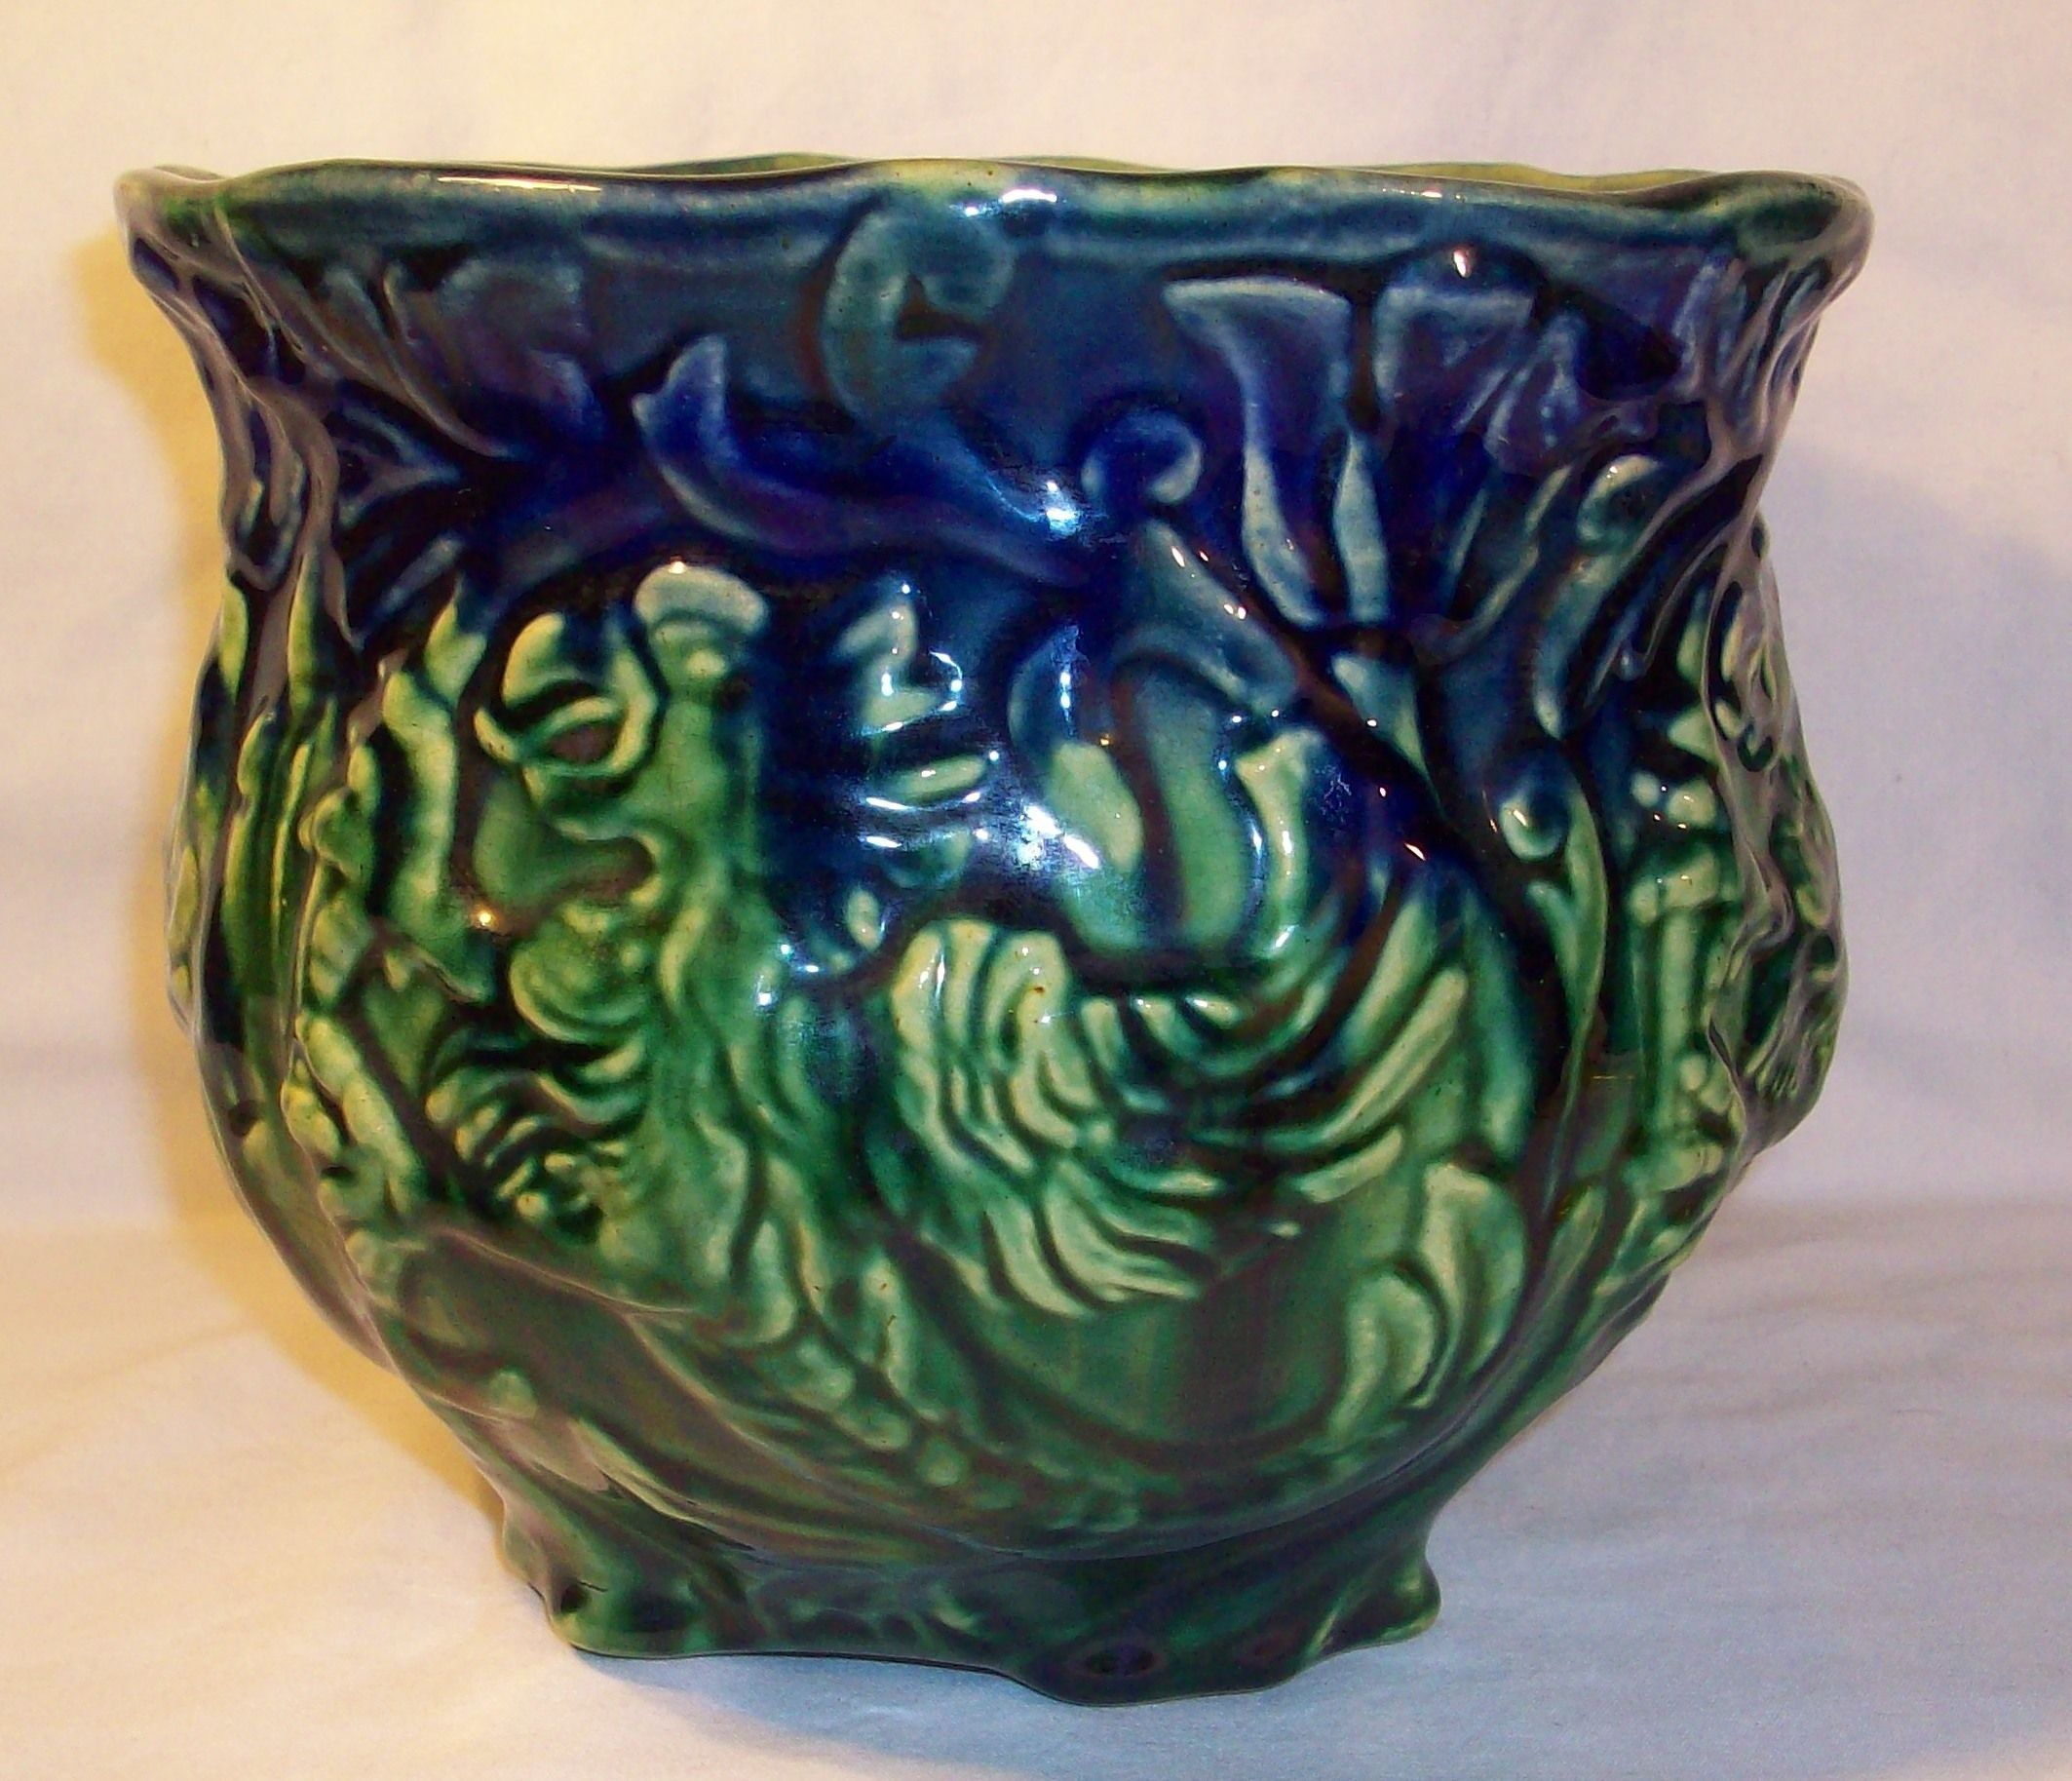 Early 1900s owens pottery blended glaze griffin jardiniere early 1900s owens pottery blended glaze griffin jardiniere reviewsmspy